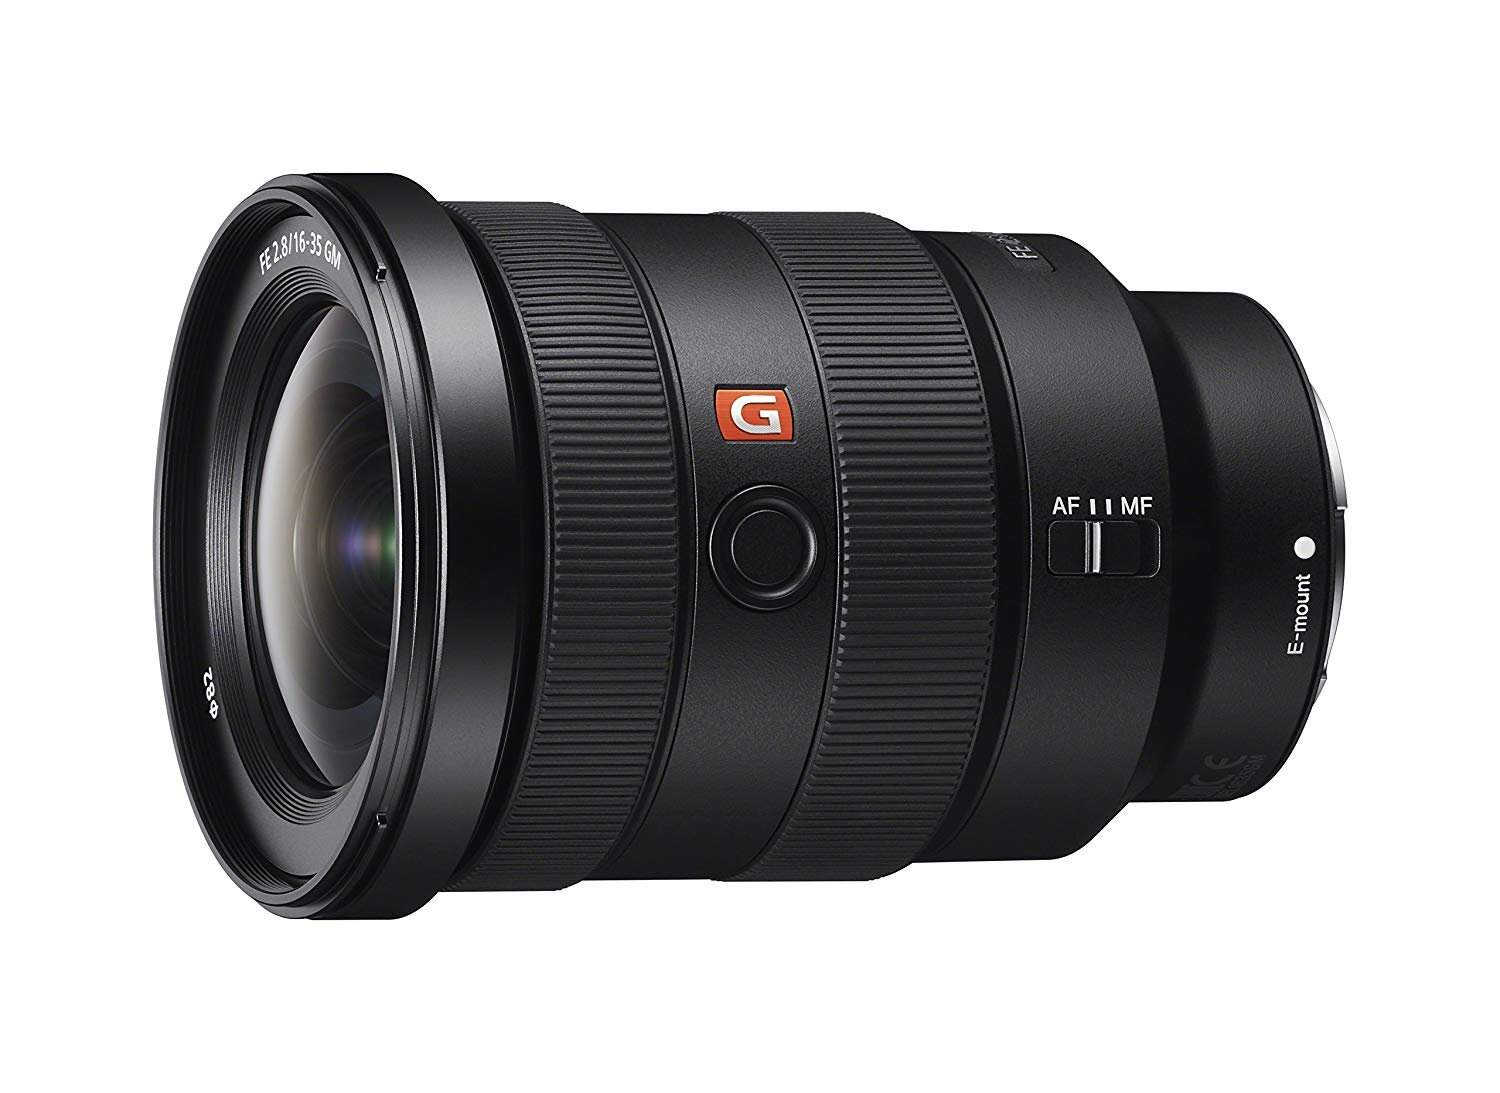 Sony G-Master Lens - Sony - FE 16-35mm F2.8 GM Wide-angle Zoom Lens